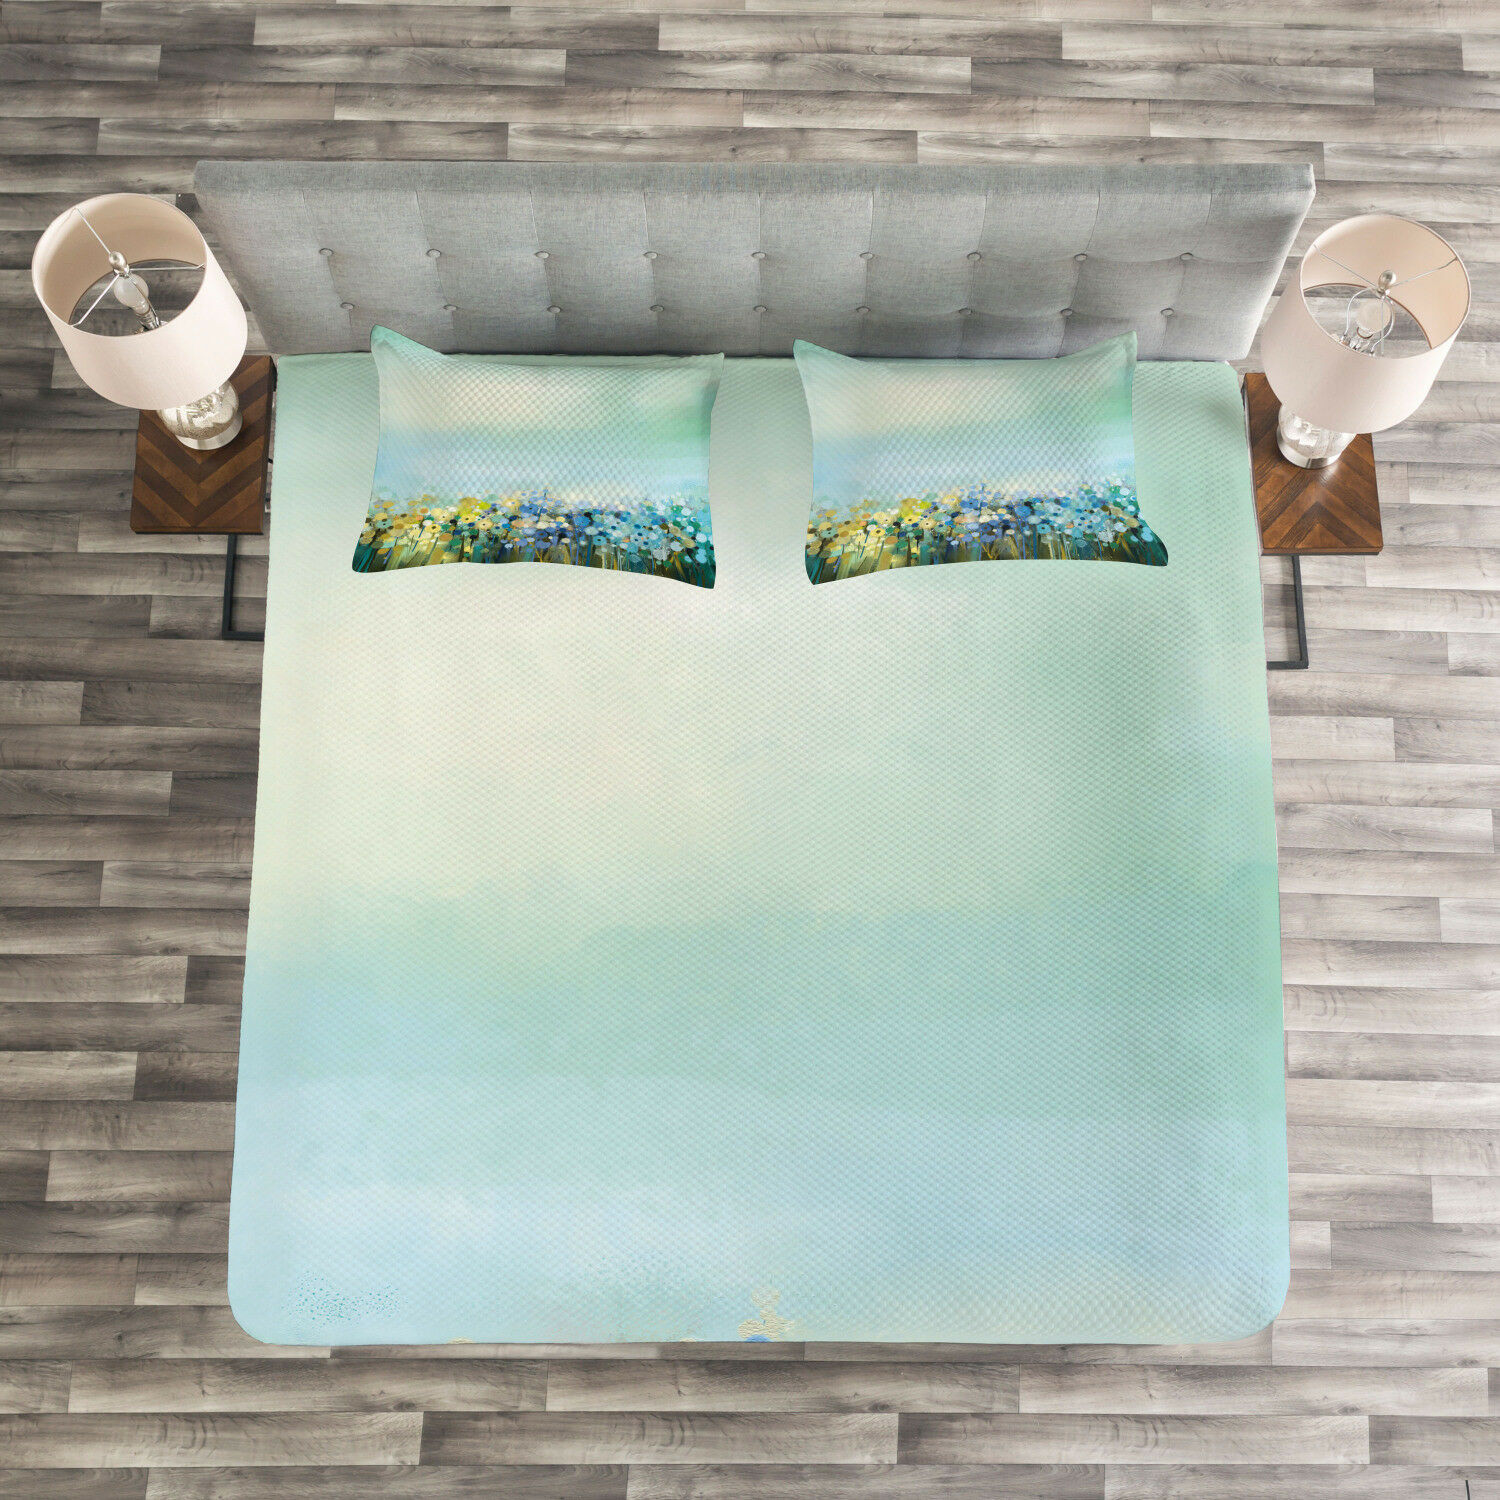 Flowers Quilted Bedspread & Pillow Shams Set, Aqua Painting Effect Print